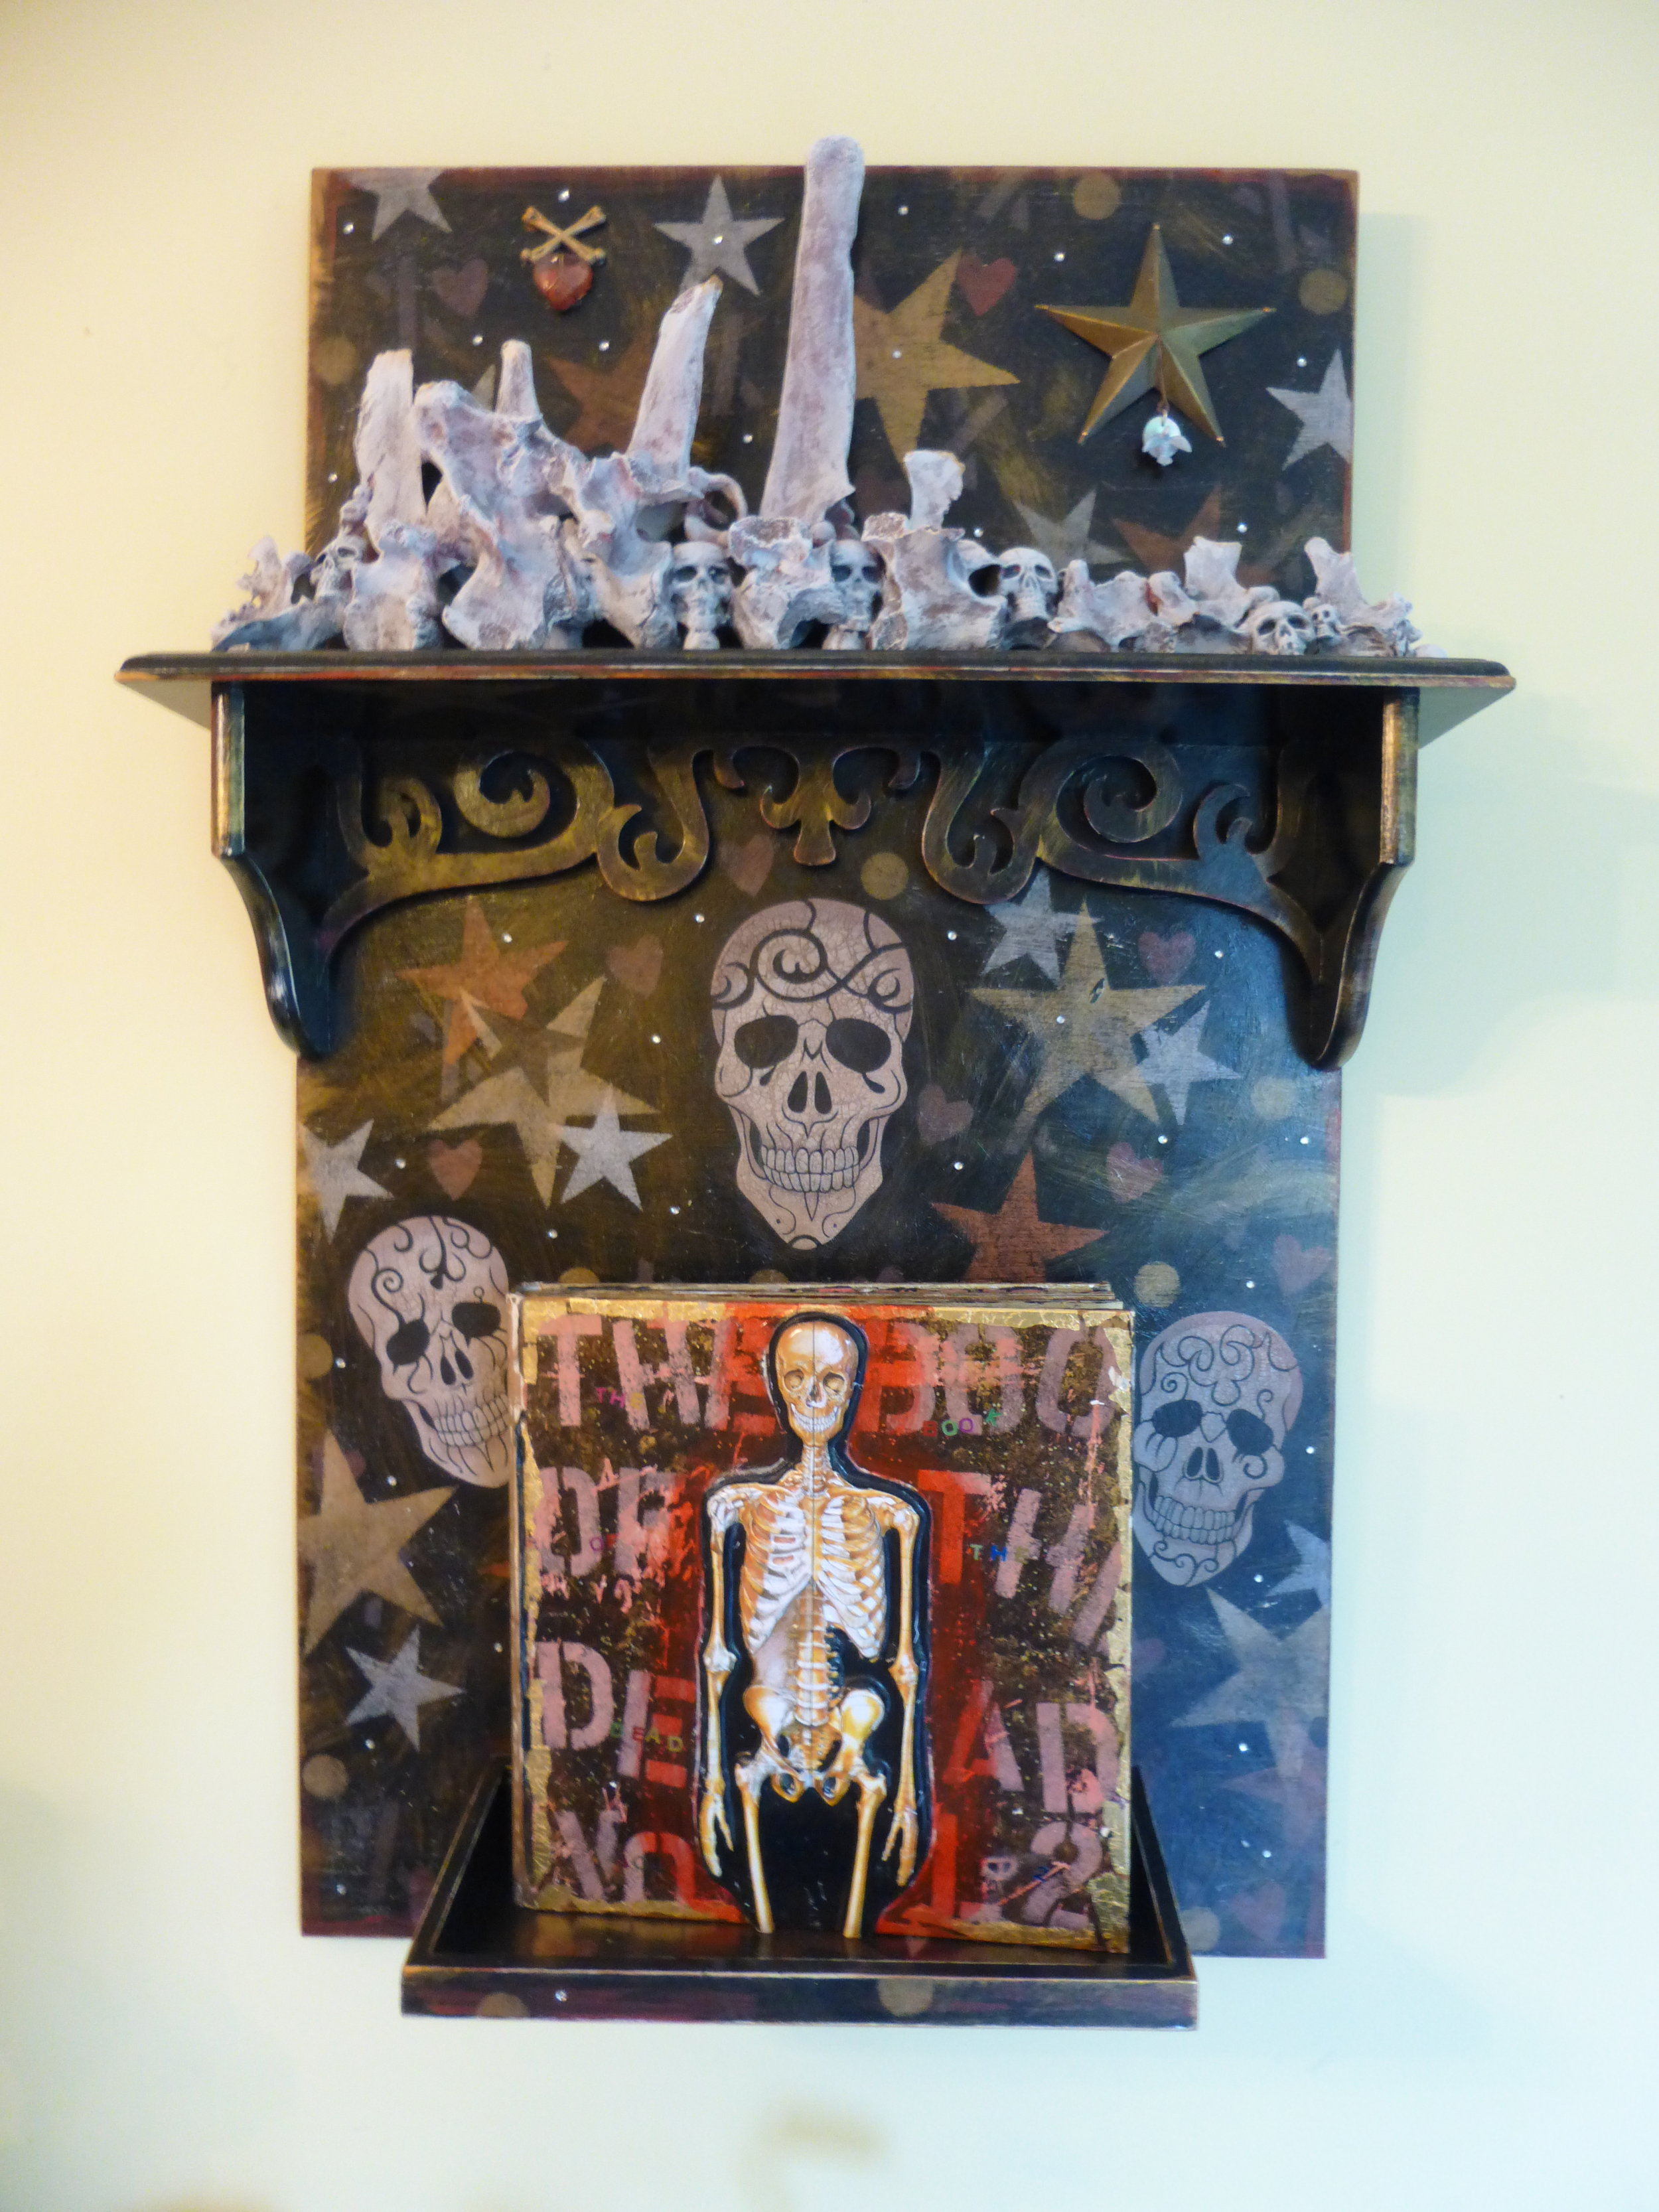 """the book of the dead - volume 2"", mixed-media collage.  Wood, moose vertebrae, plastic skulls, skeleton from the dollar store, acrylic paint, book, text."